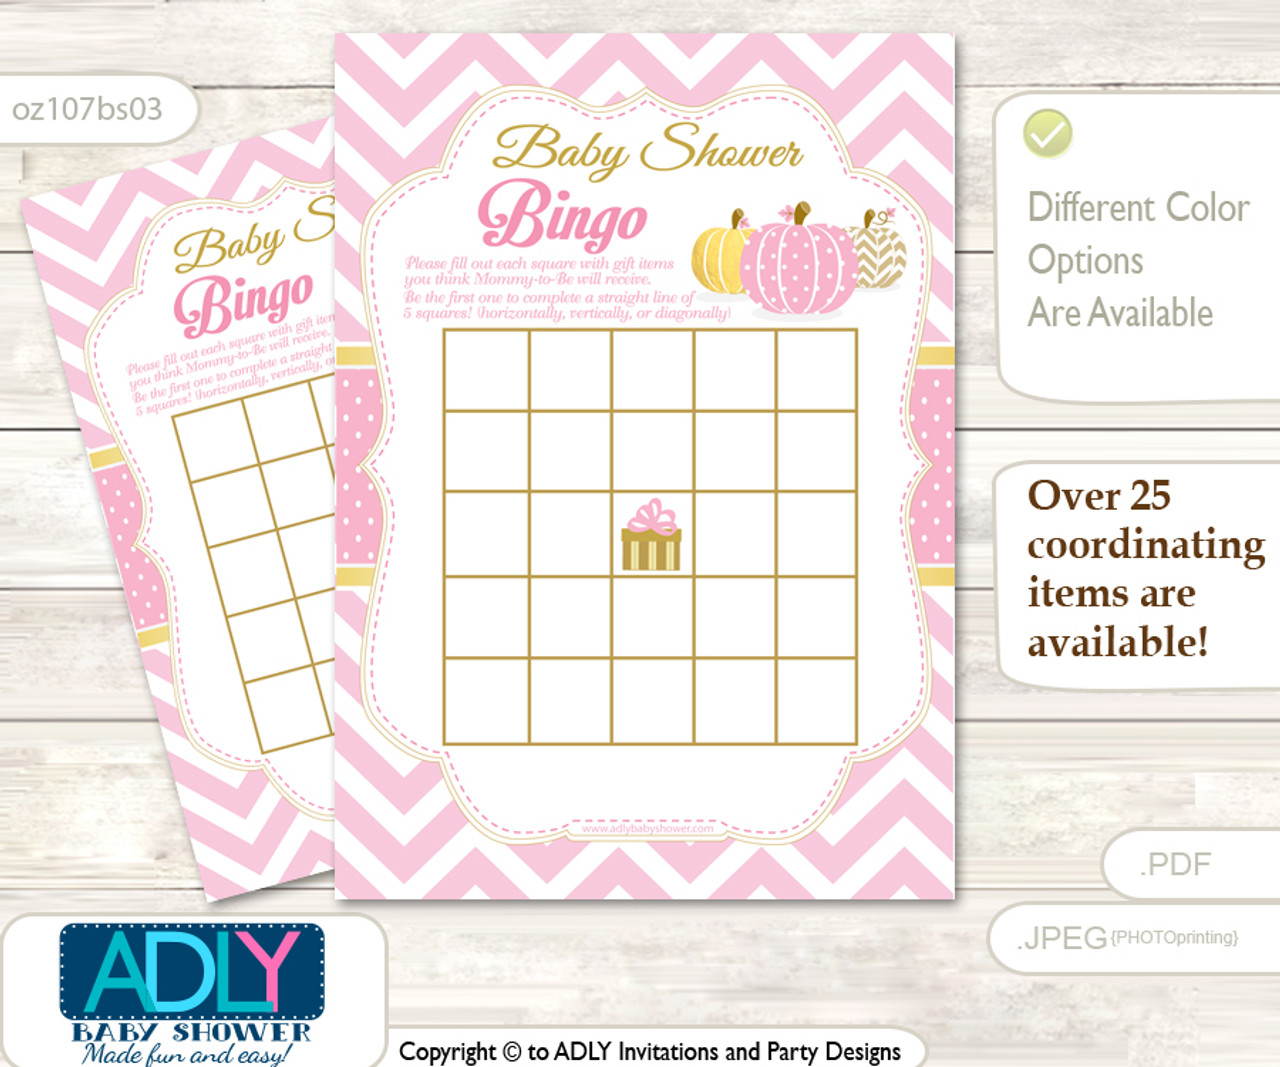 picture about Baby Bingo Printable named Printable Red Pumpkin Bingo Match Printable Card for Youngster Woman Shower Do it yourself gray, Red, Chevron